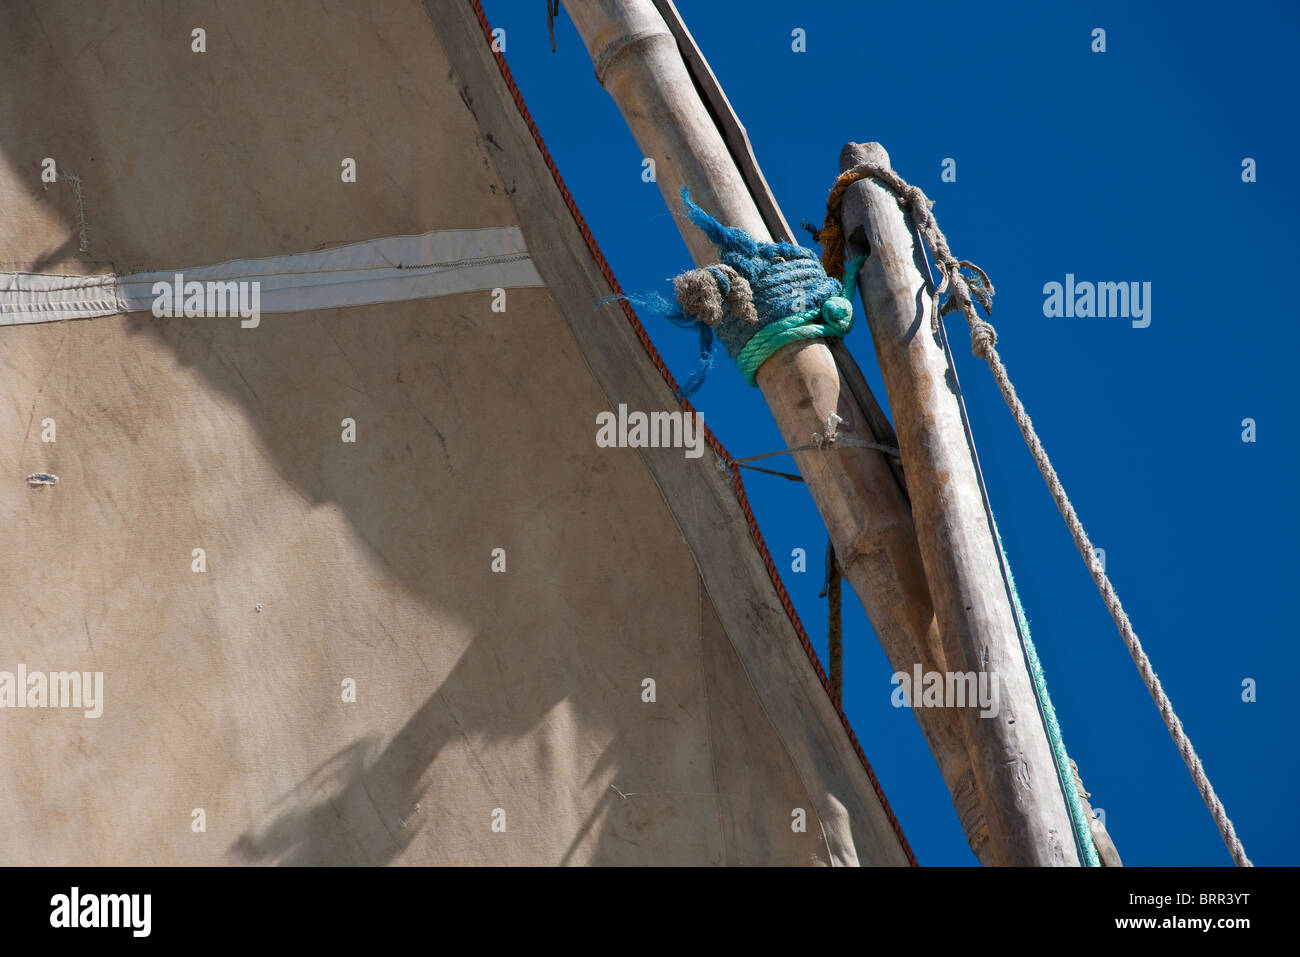 Close-up view of the mast and canvas sail of a dhow or traditional fishing boat - Stock Image